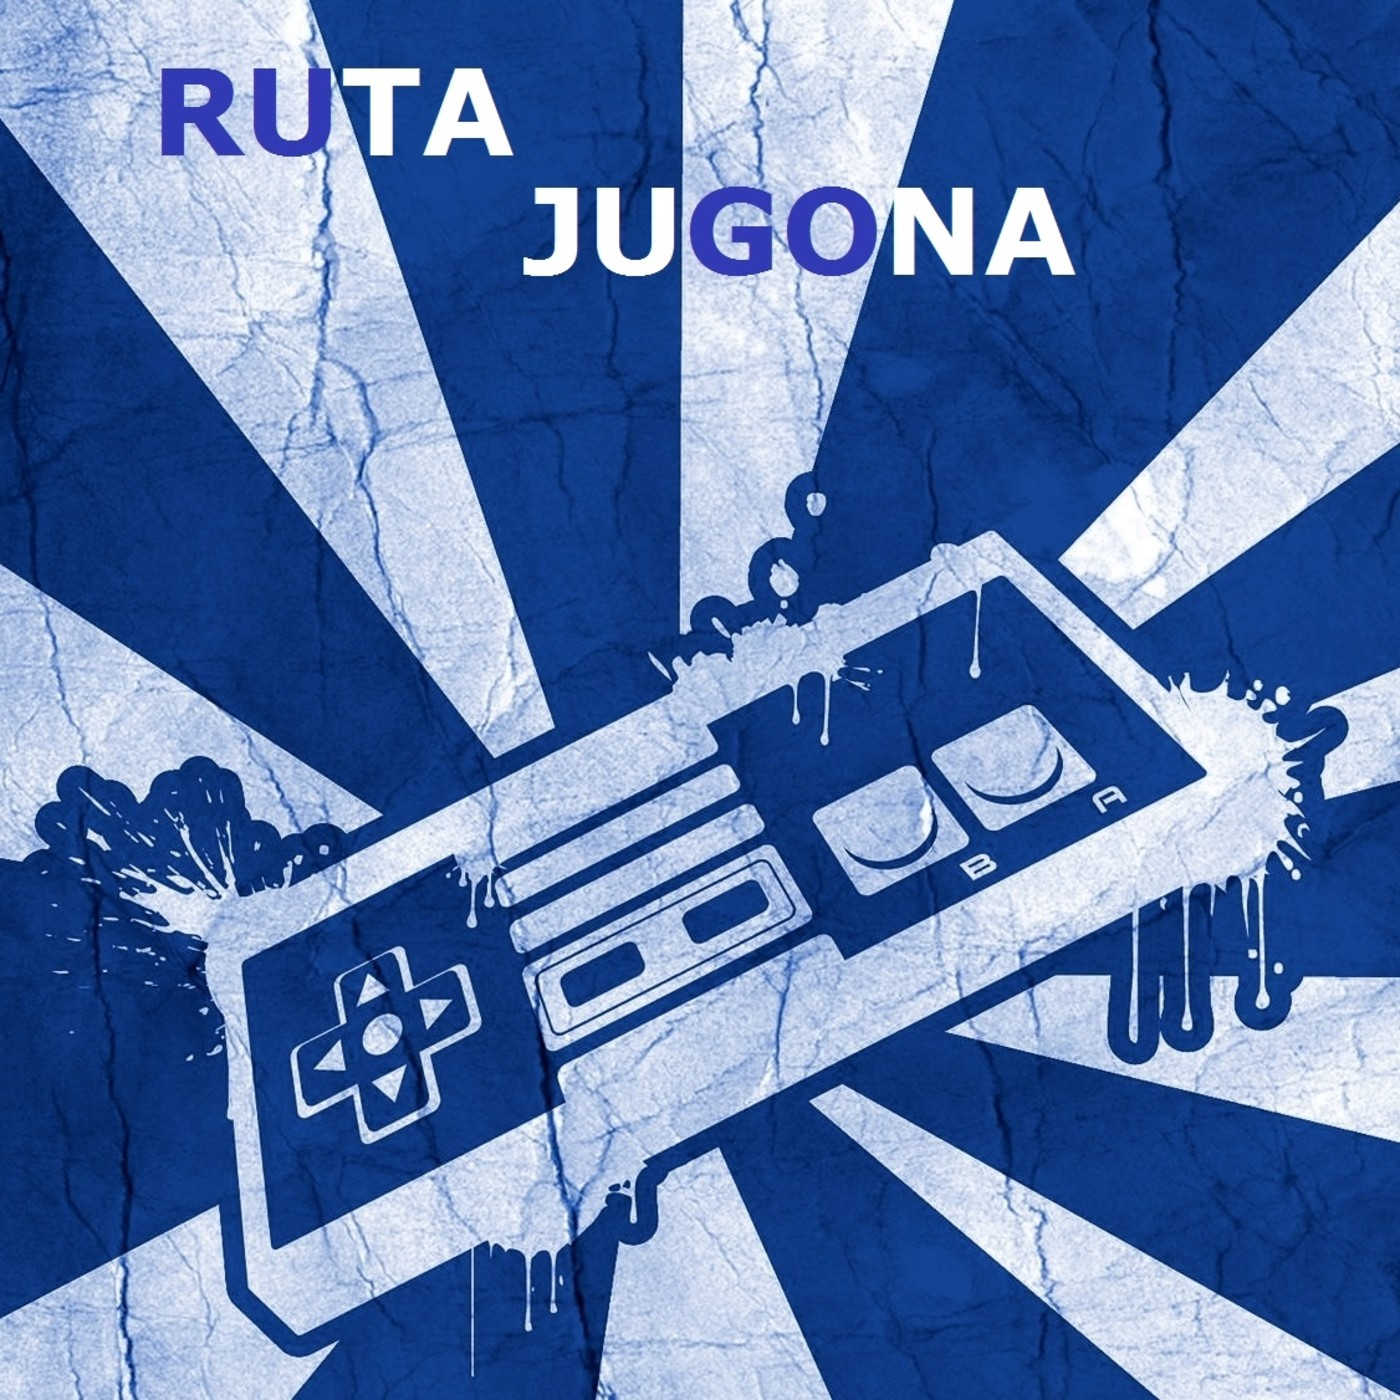 Ruta Jugona - 03x07 Análisis Nintendo Switch, Horizon Zero Dawn y prewiew Zelda Breath of the Wild - Con Sparterx Uom